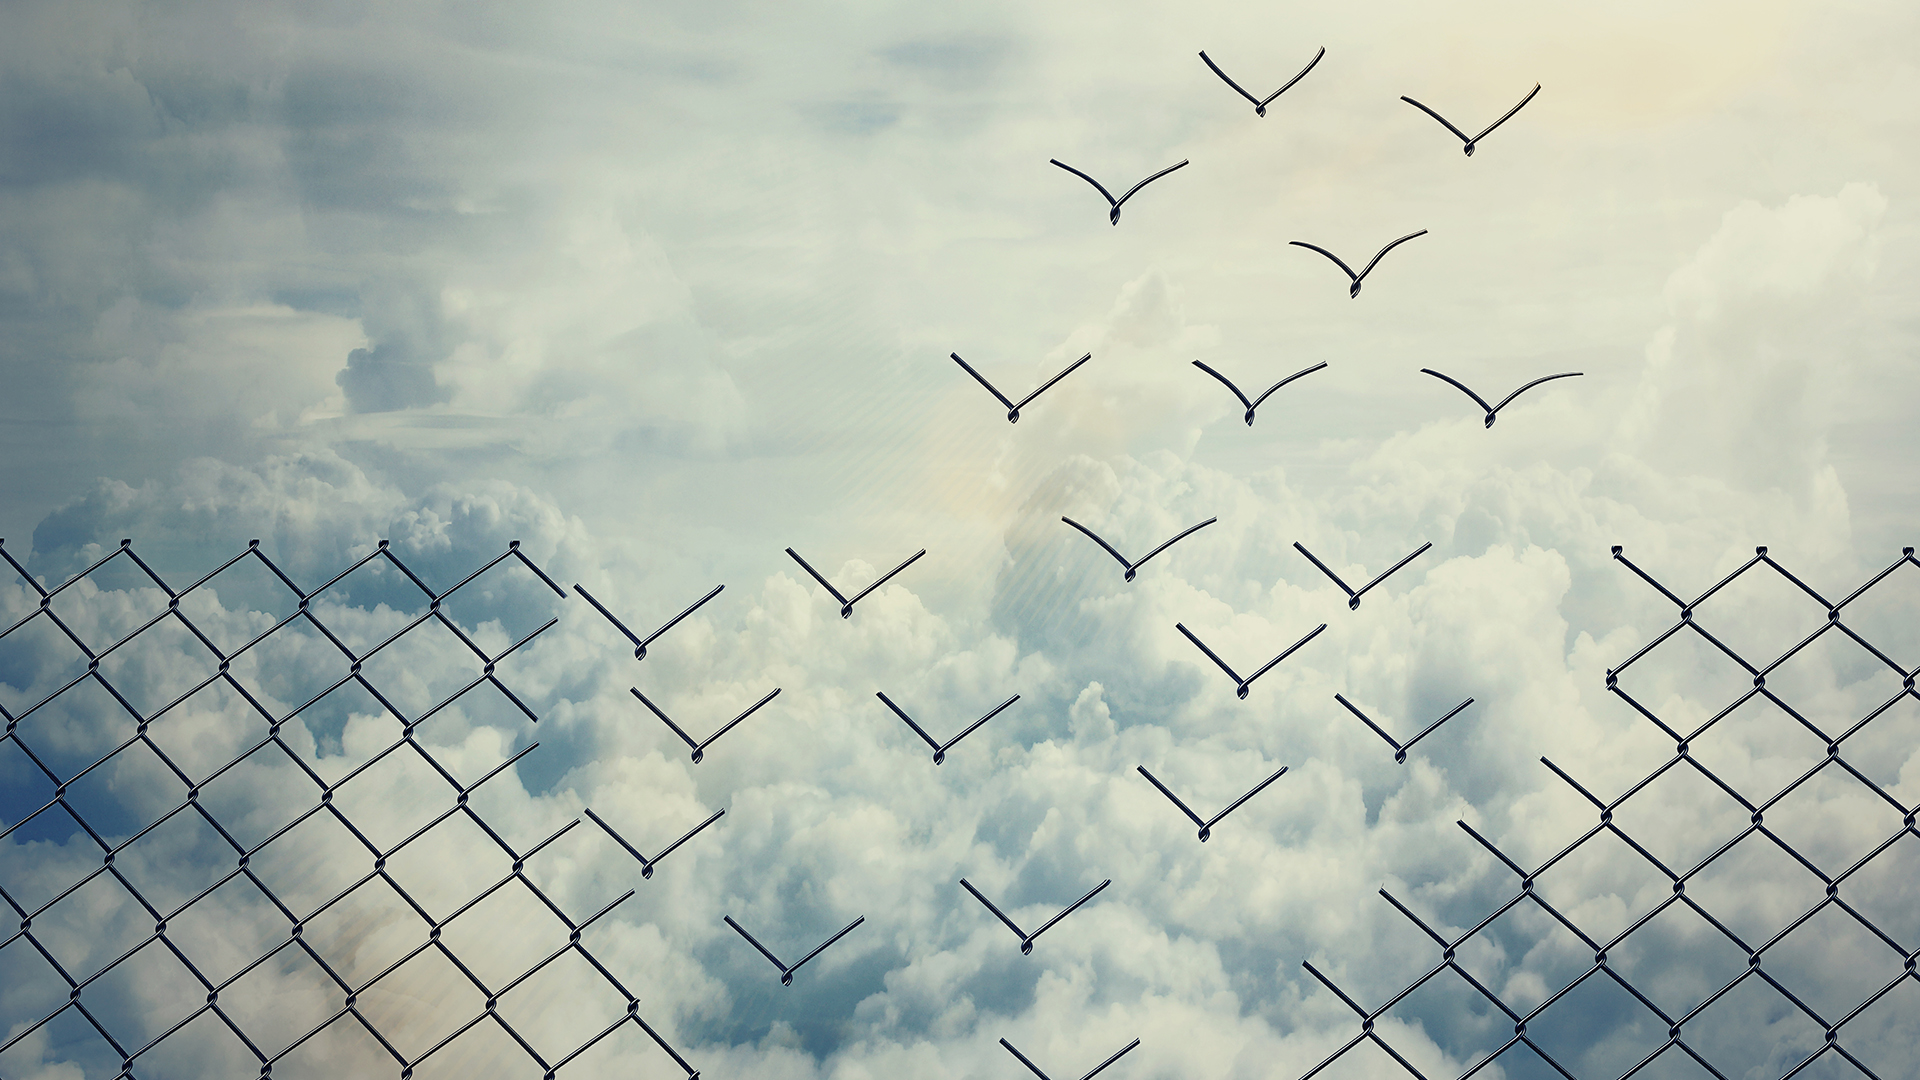 Change_wire_fence_to_birds